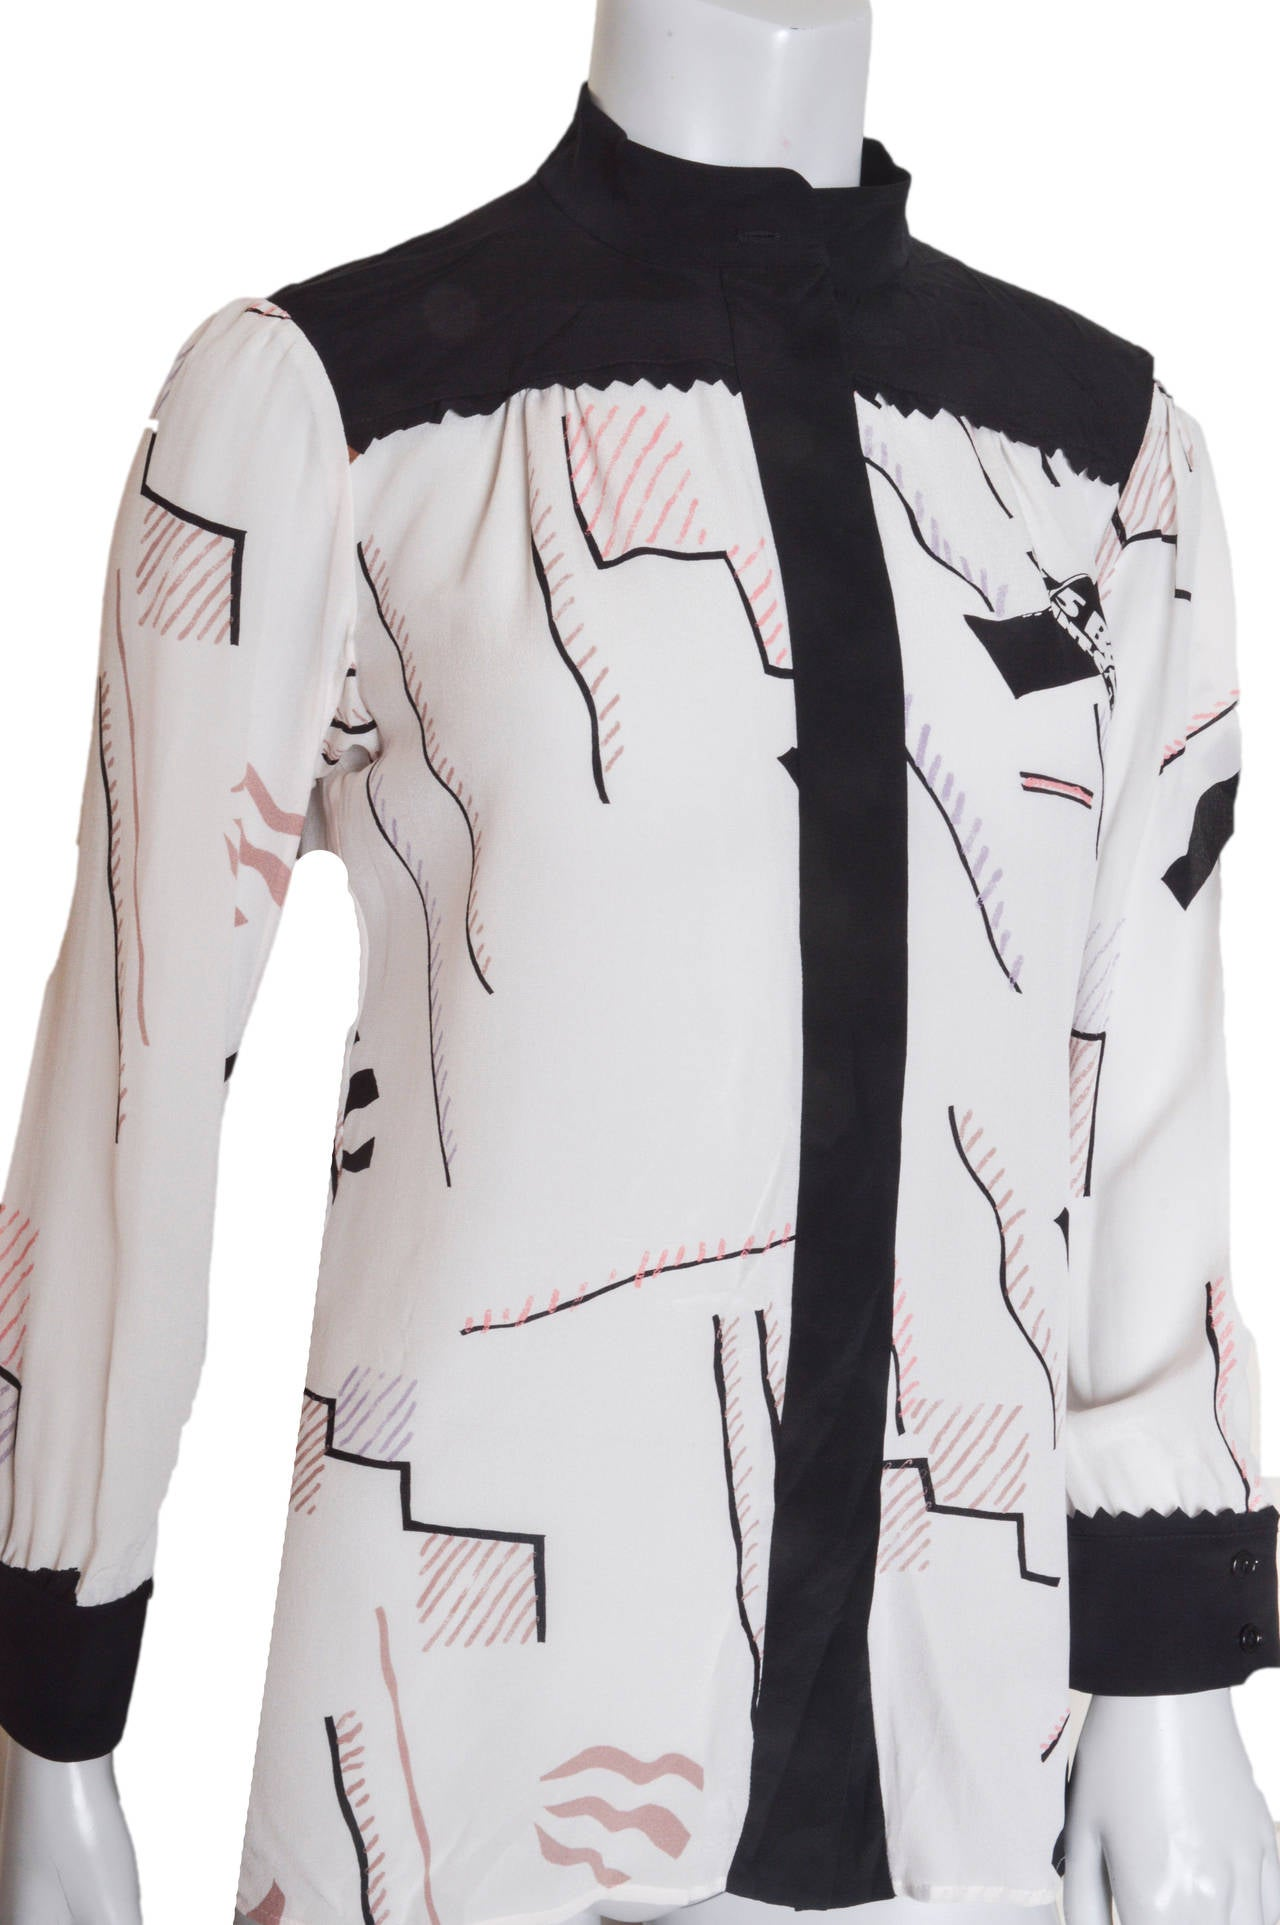 Striking Sonia Rykiel geometric print blouse.